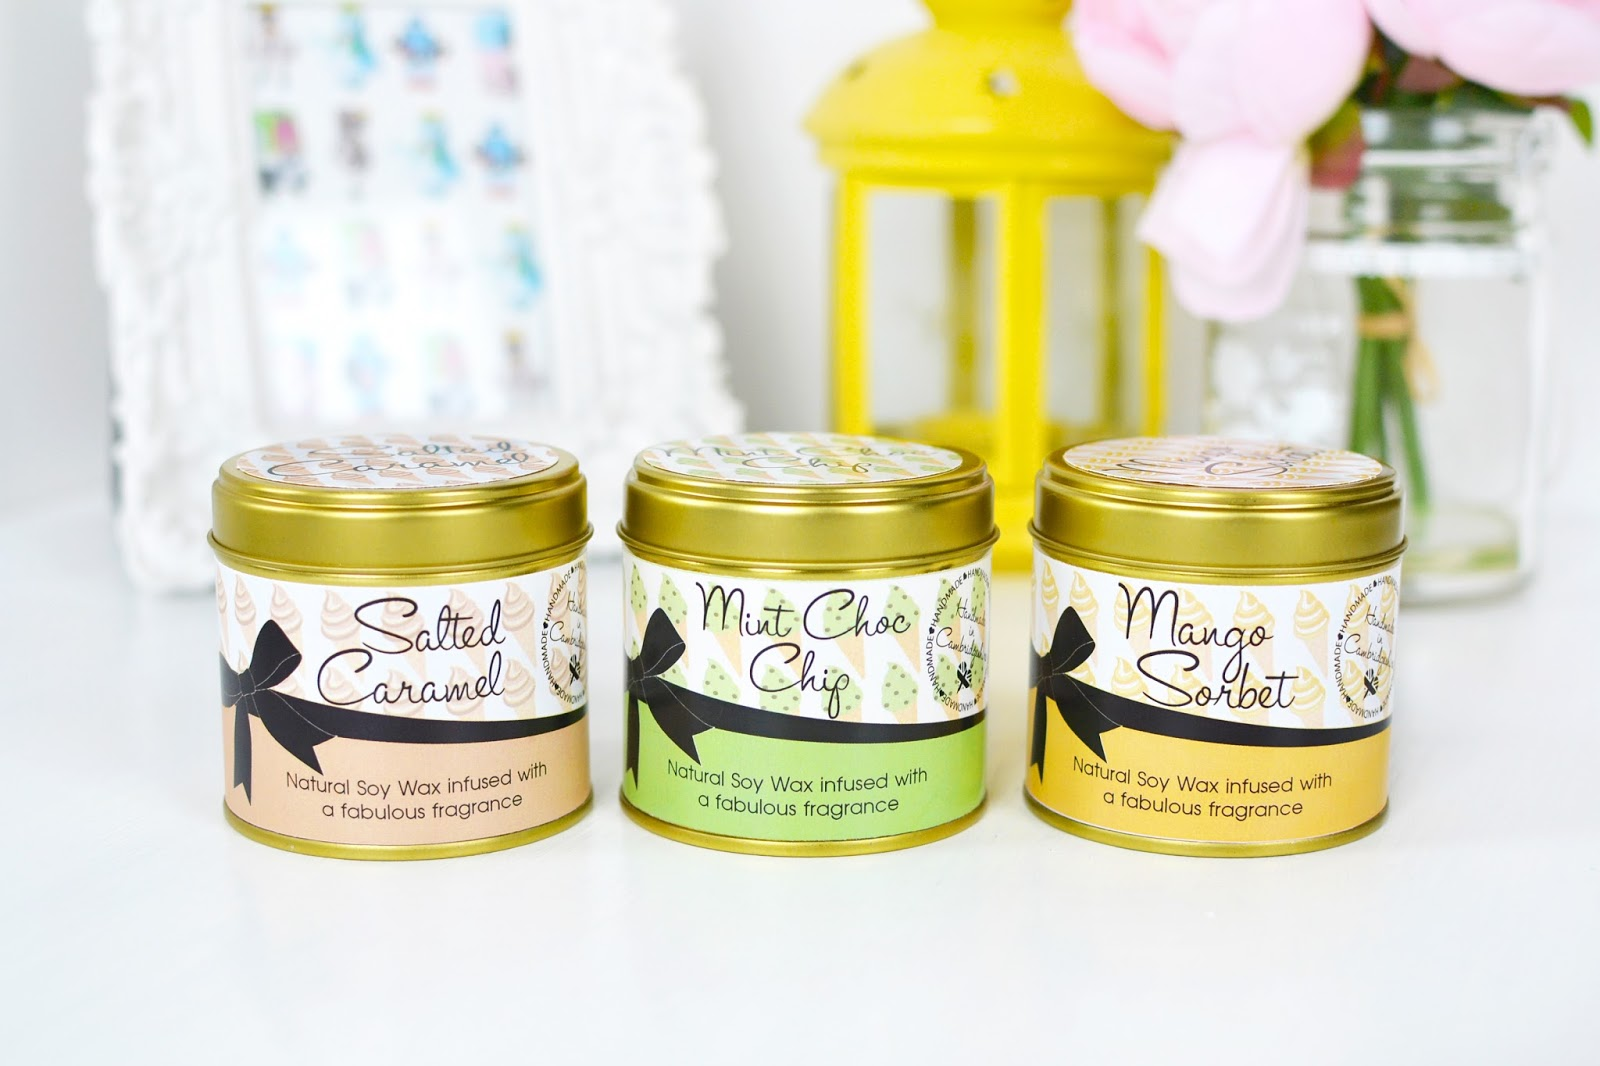 ice cream inspired candles